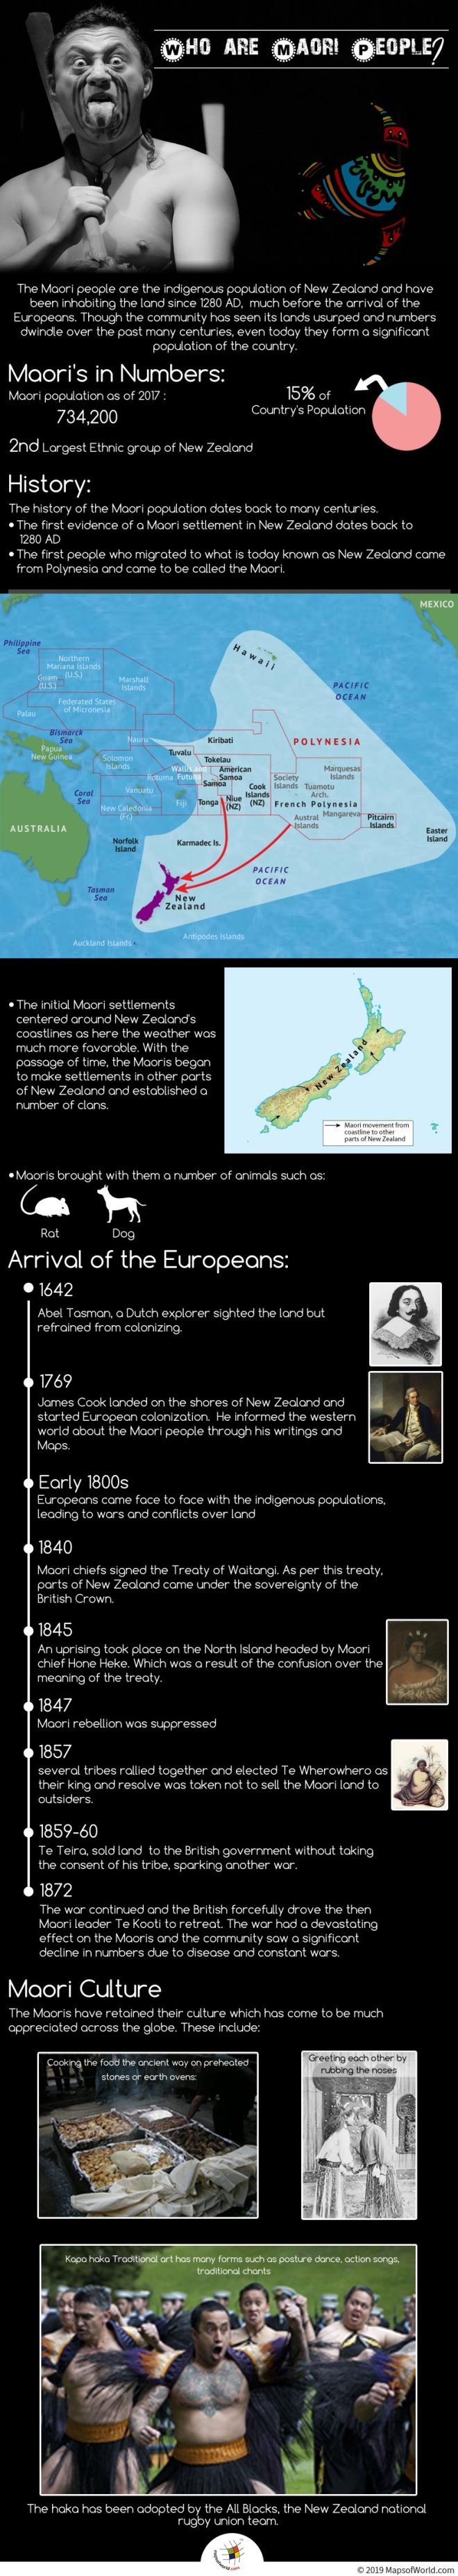 Infographic Giving Details About Maori People